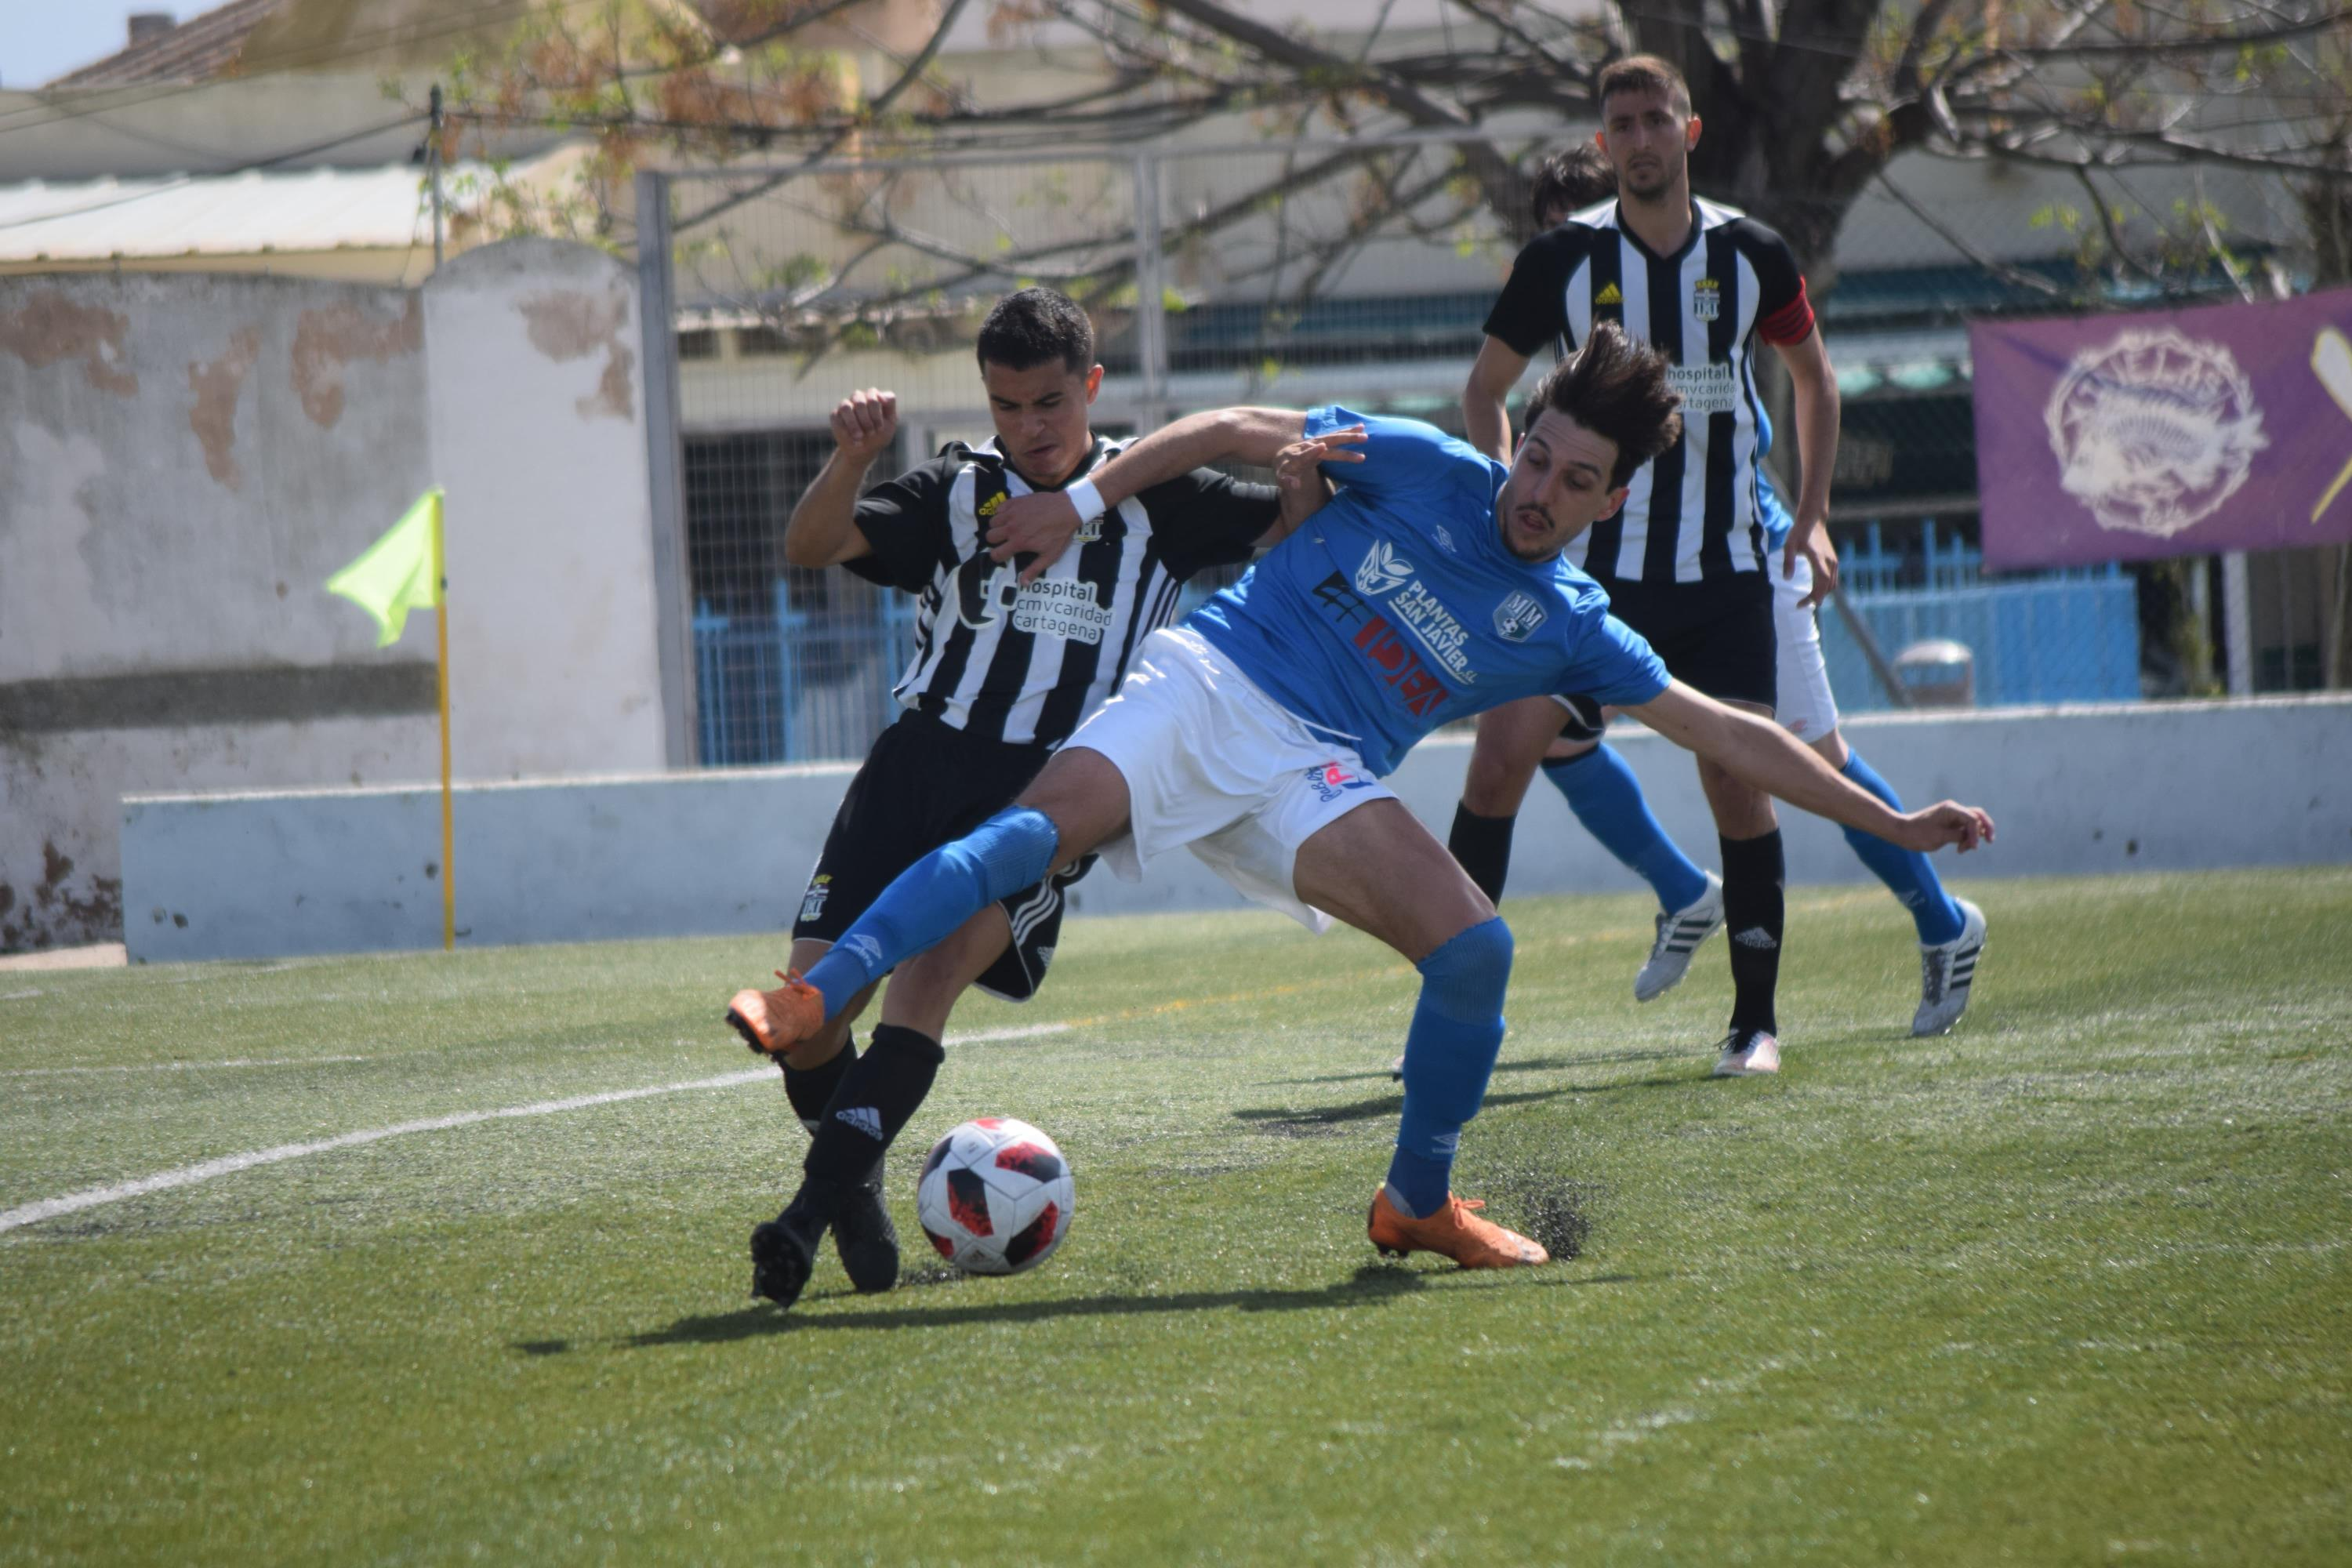 MAR MENOR FC 0-0 FC CARTAGENA B.